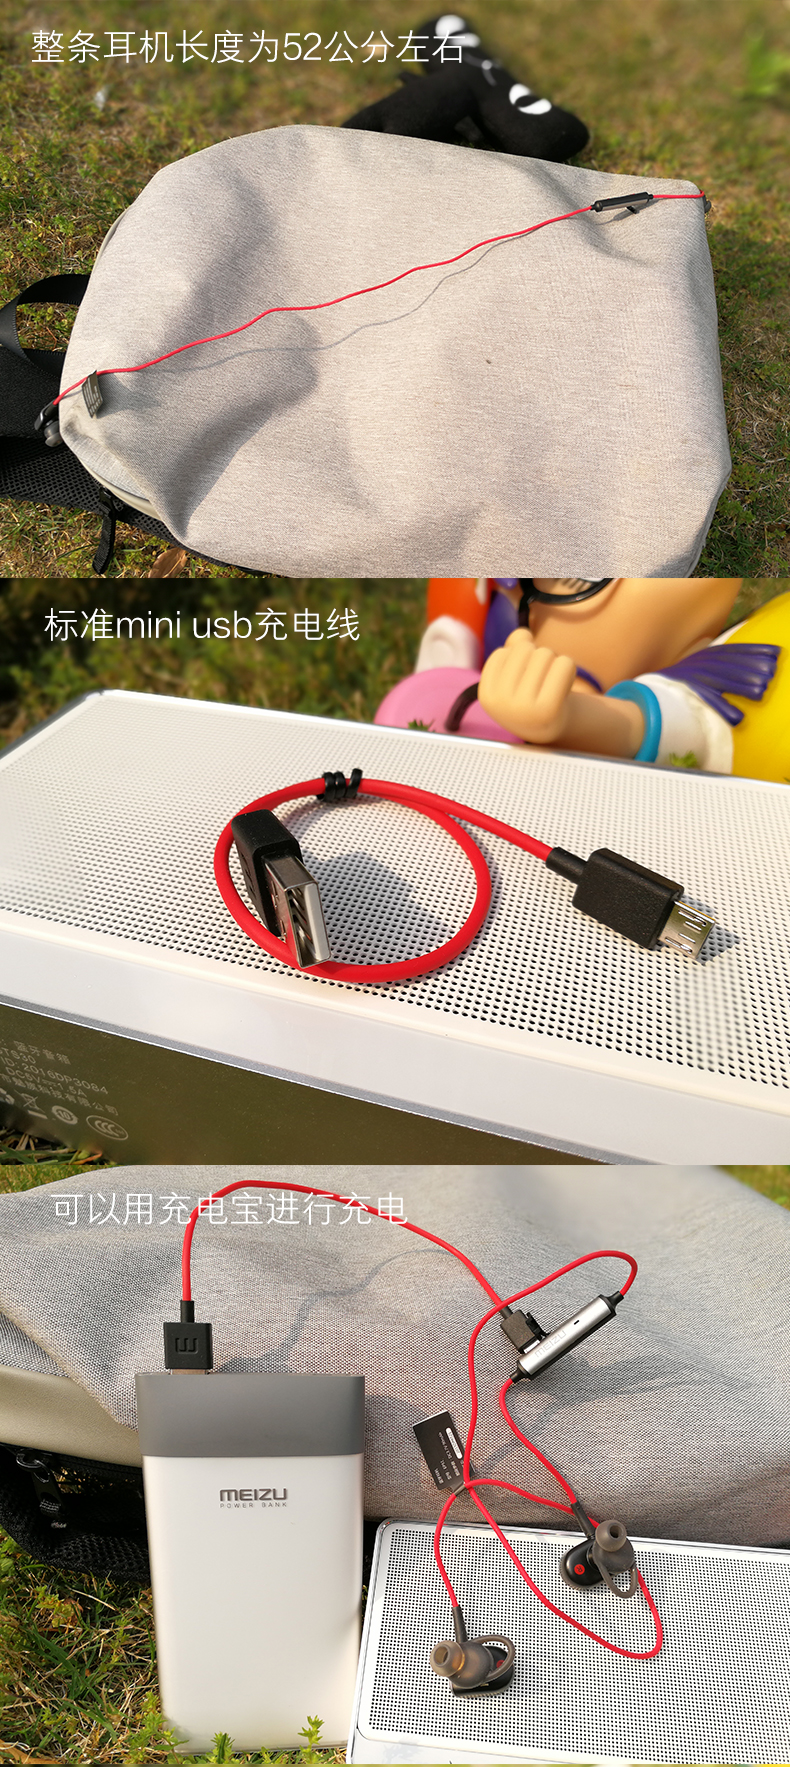 100% Original MEIZU Earphone EP51,In-ear Bluetooth Earphone For Sports Running,Anti-sweat Design,Very Light Weight,Music Control